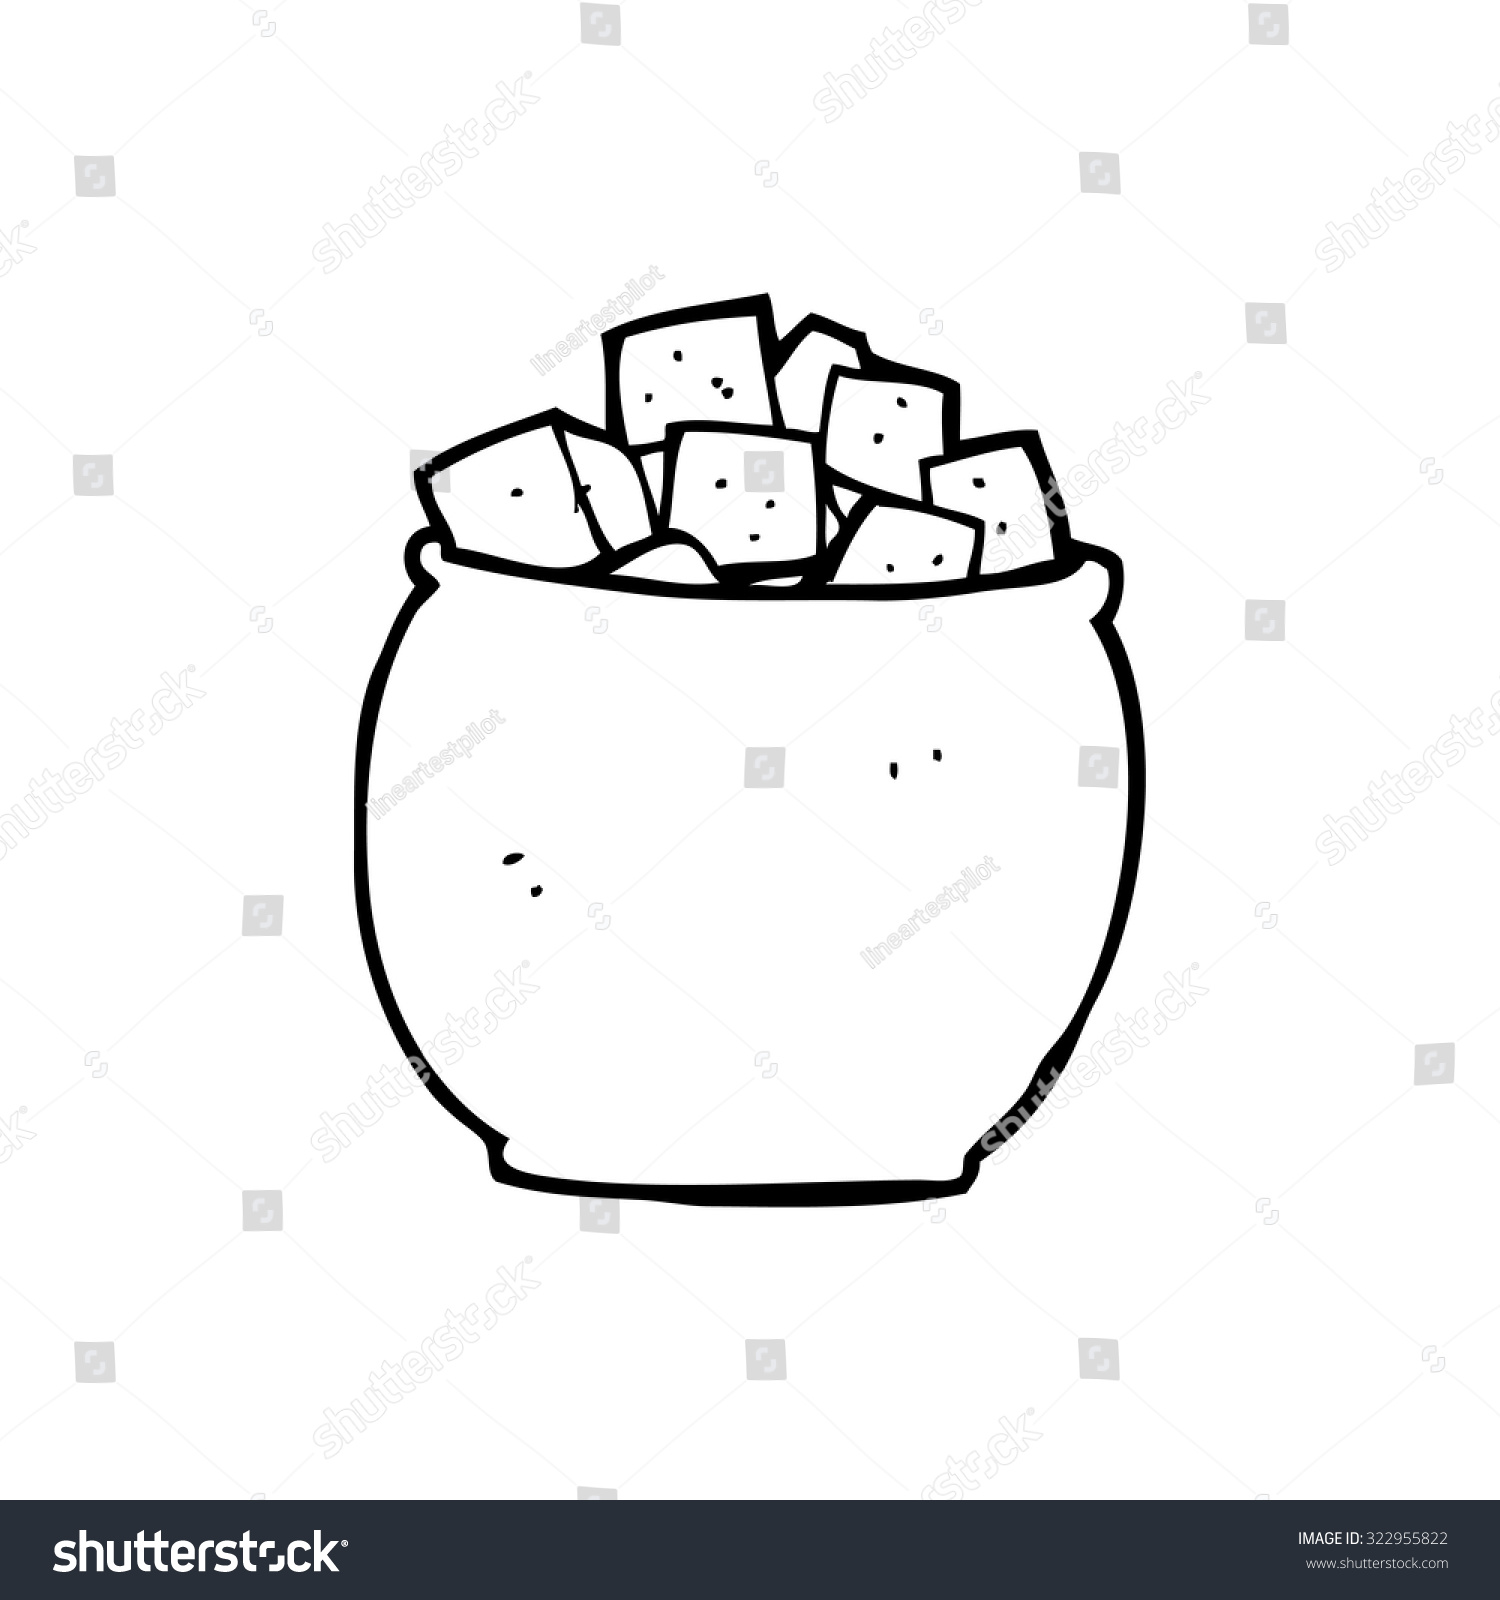 Simple Black And White Line Art : Simple black white line drawing cartoon stock vector